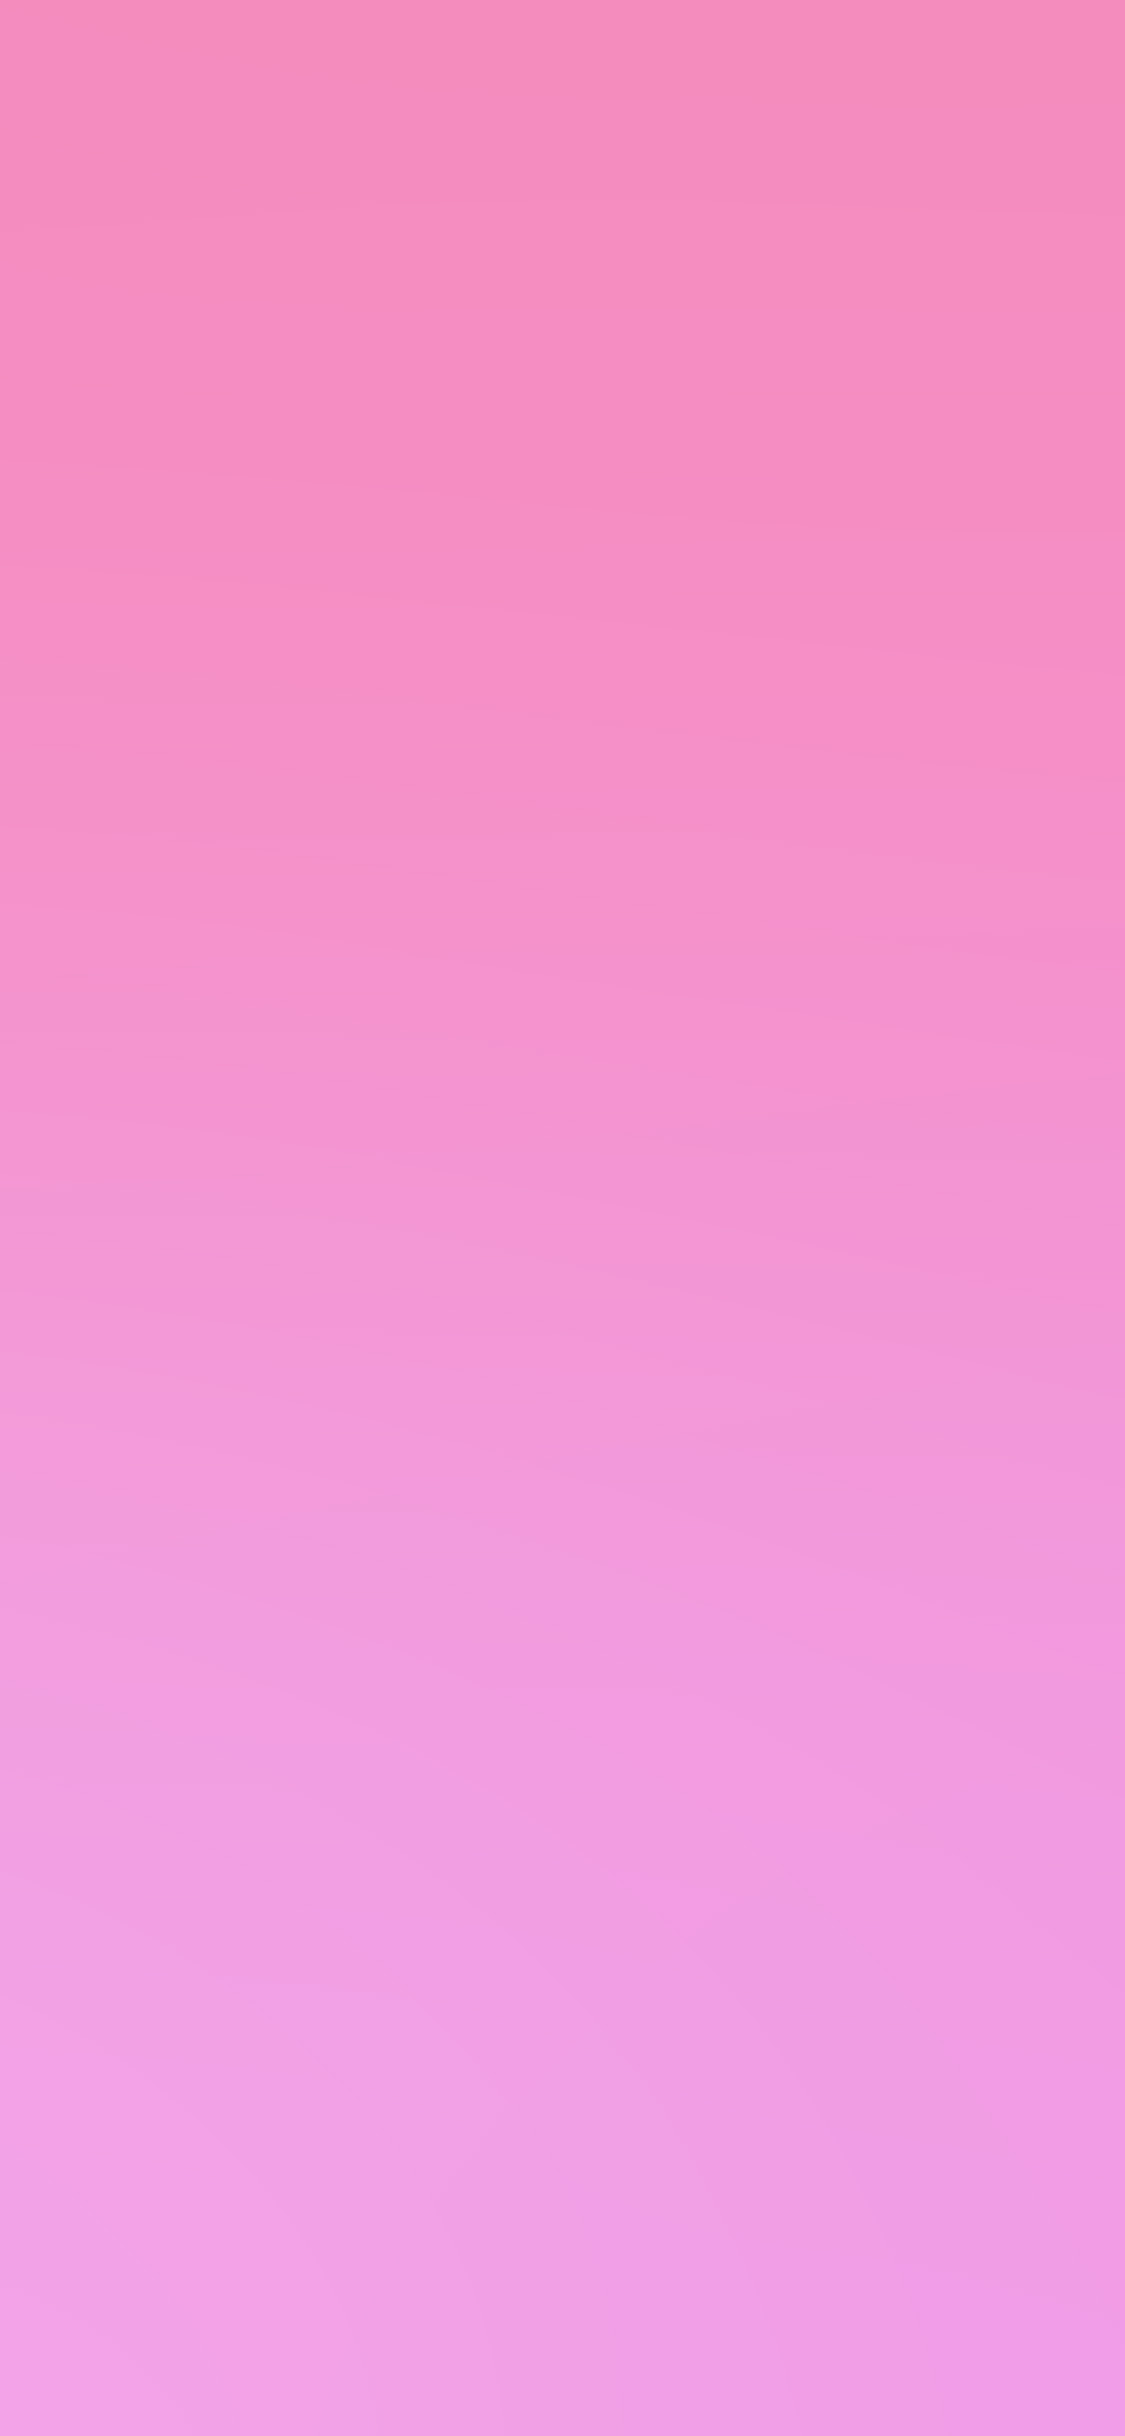 iPhonexpapers.com-Apple-iPhone-wallpaper-so05-pink-neon-soft-pastel-blur-gradation